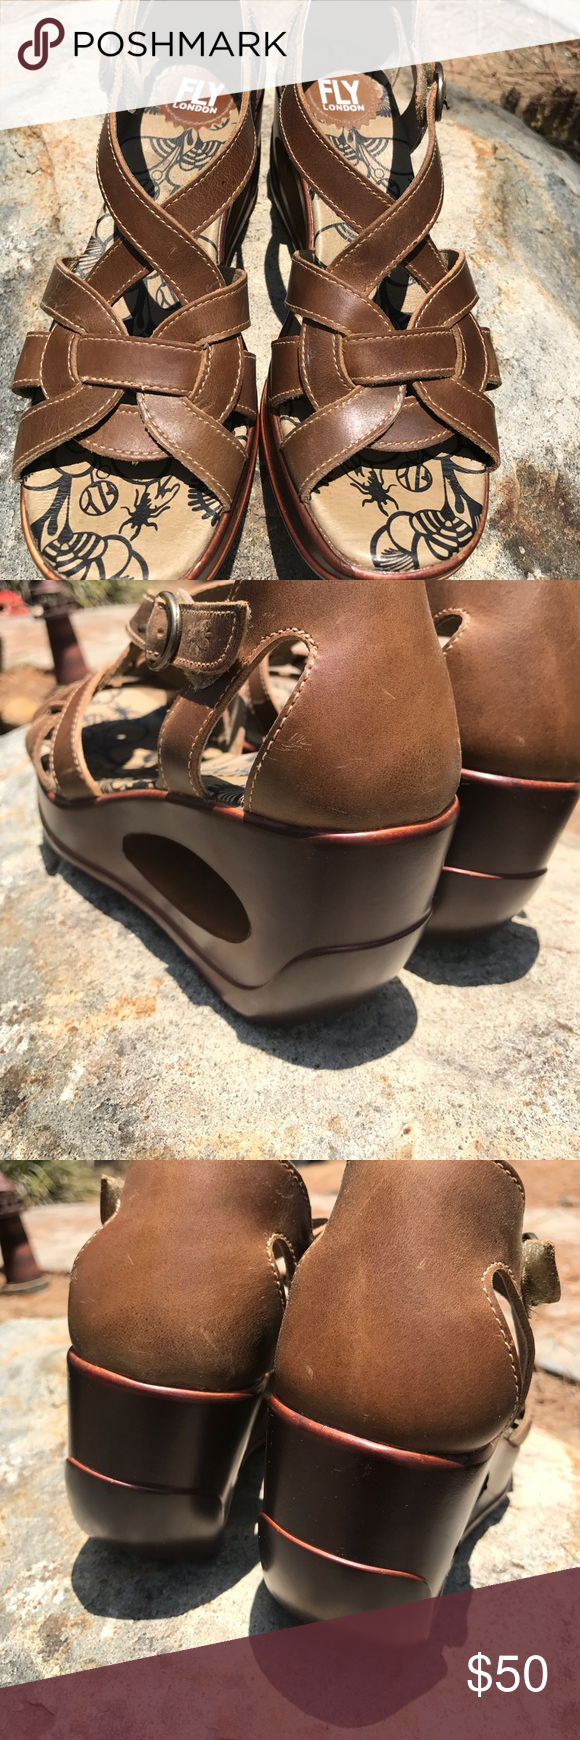 🔆 Fly London Sandals 🔆 Beautiful and Boho. The centerpiece of these sandals - alongside comfort - is their heels. Wore these about three times and received many compliments. Aside from some wear on the bottom, these are in excellent condition. Fly London Shoes Sandals